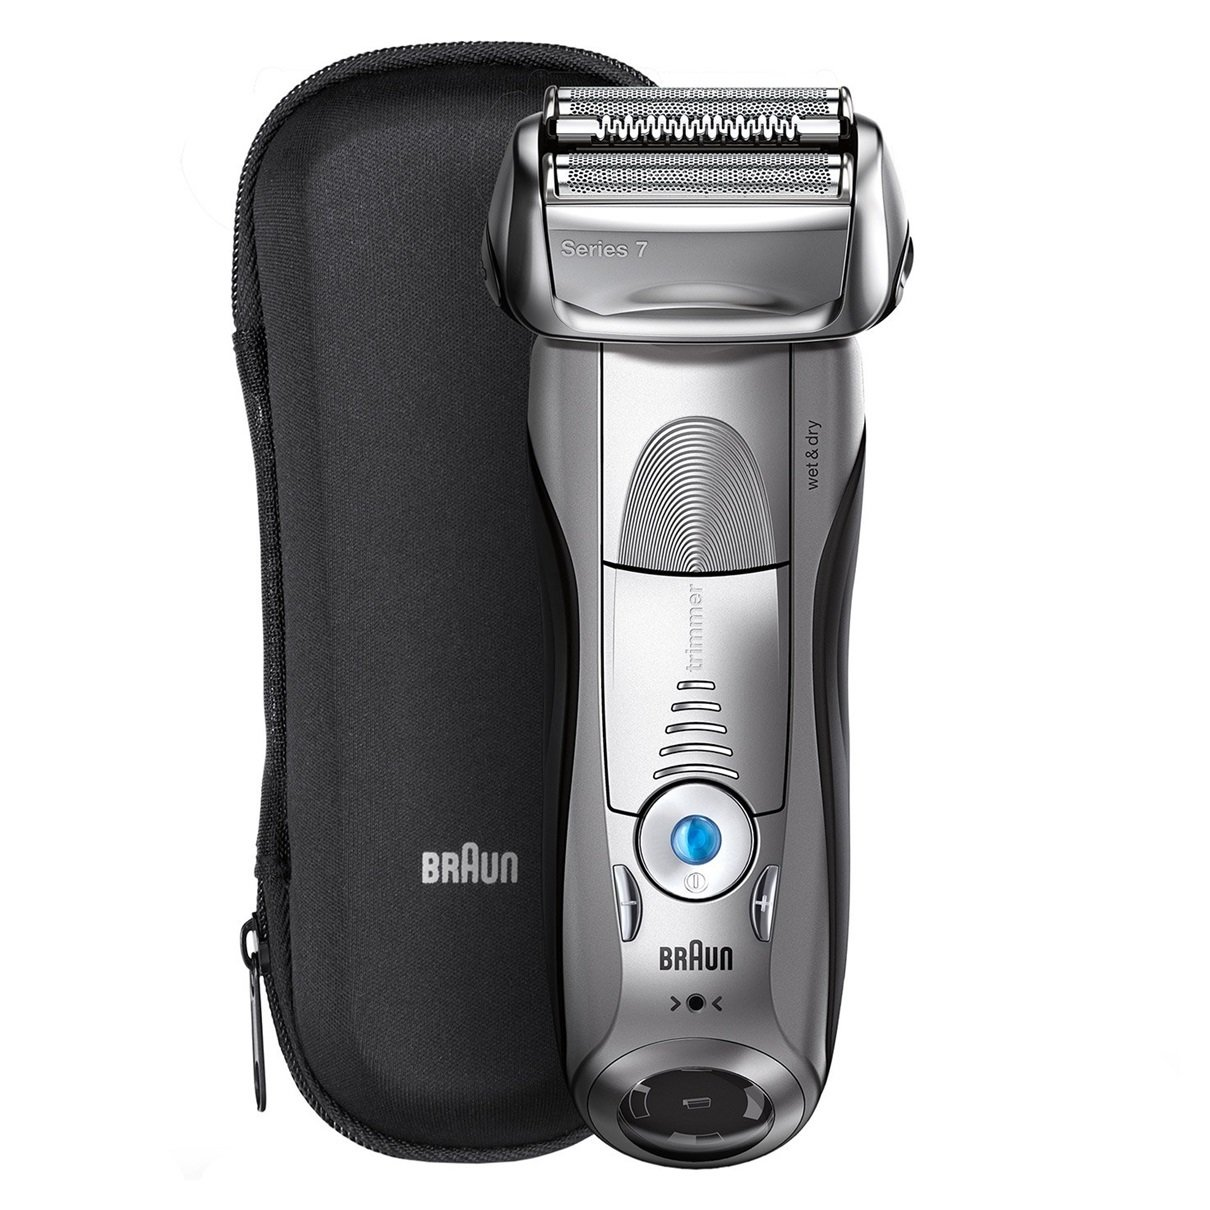 Braun Series 7 7893s Electric Shaver Wet & Dry